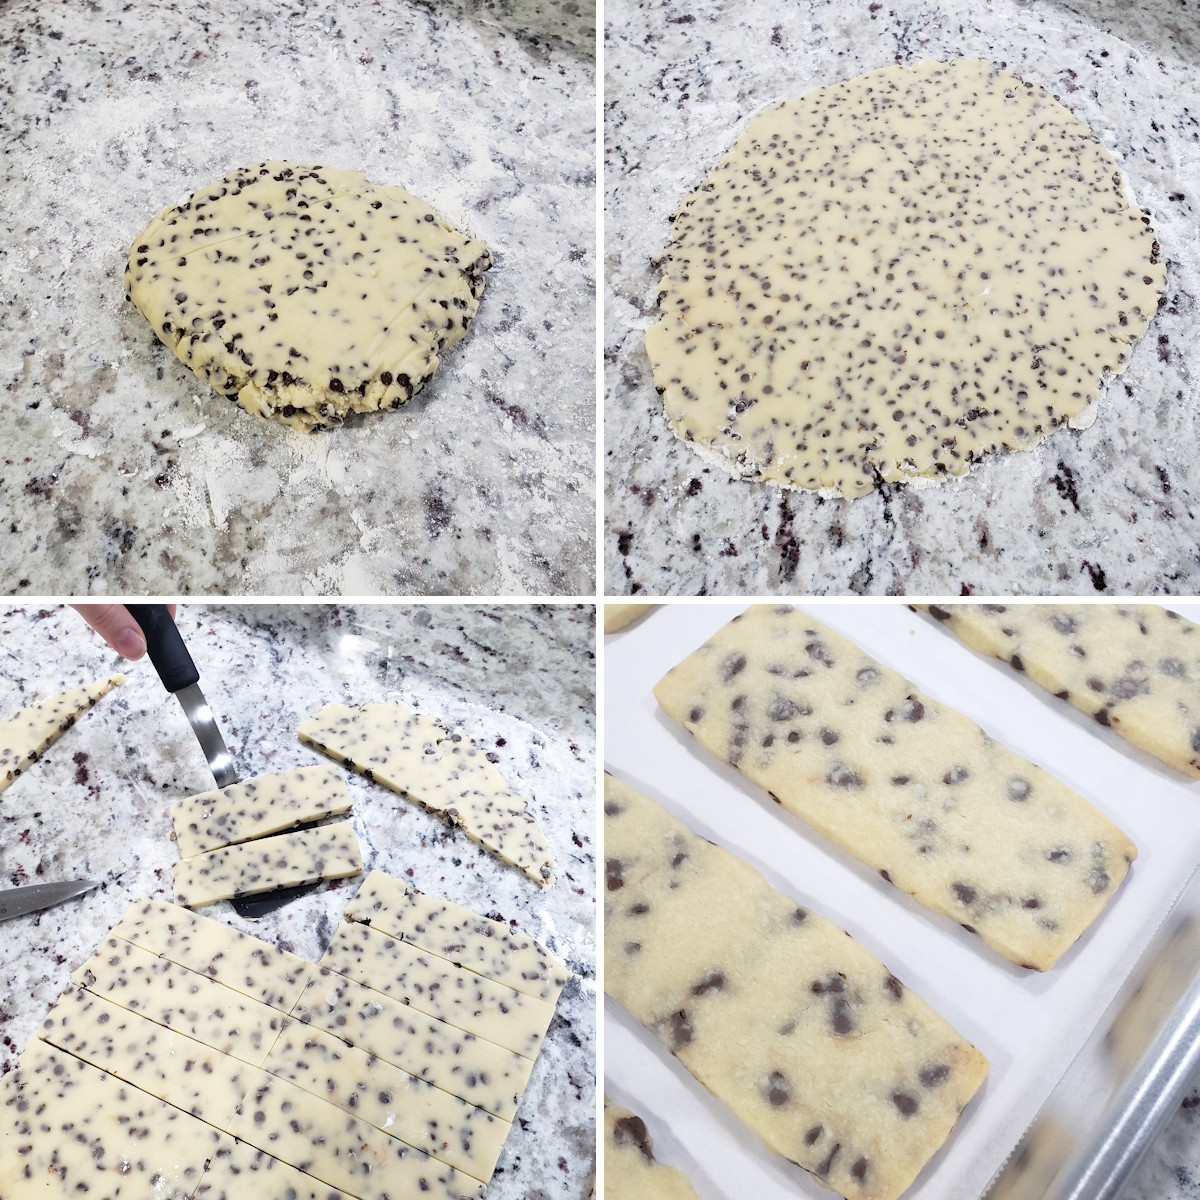 Rolling and slicing shortbread cookie dough.